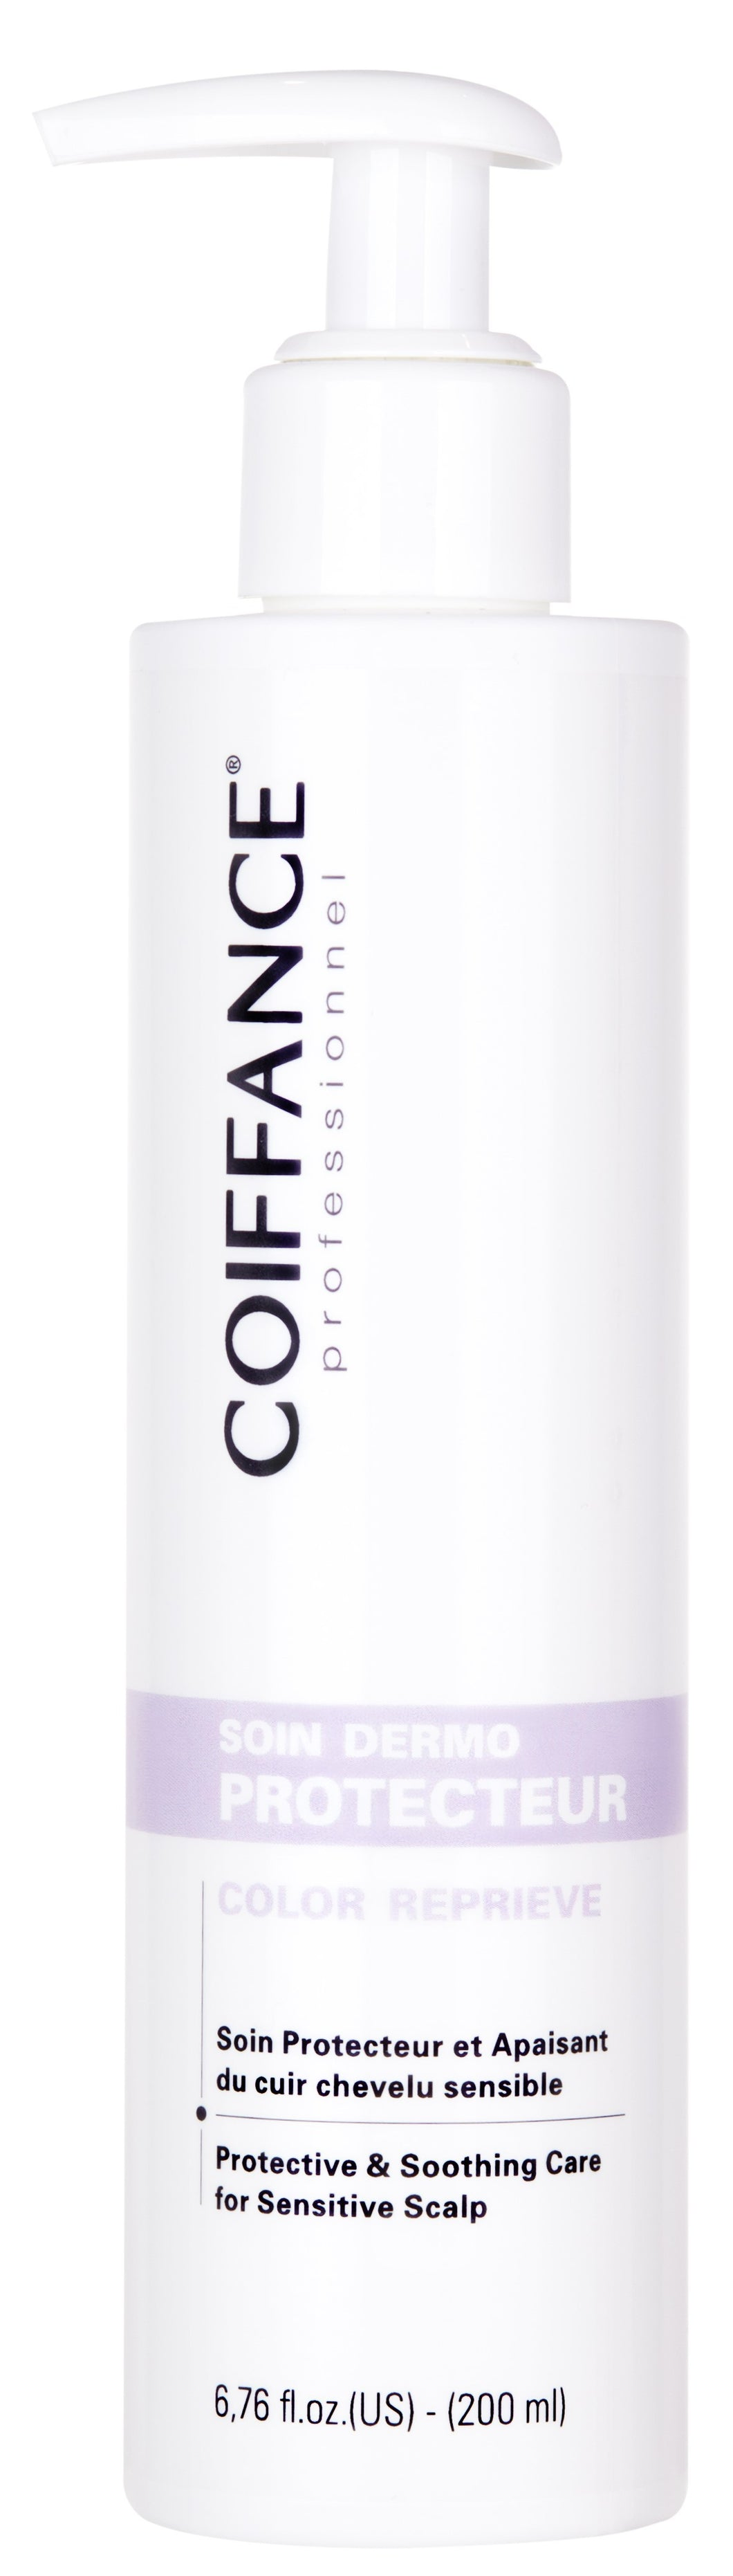 Coiffance Technic - color reprieve care - 200ML